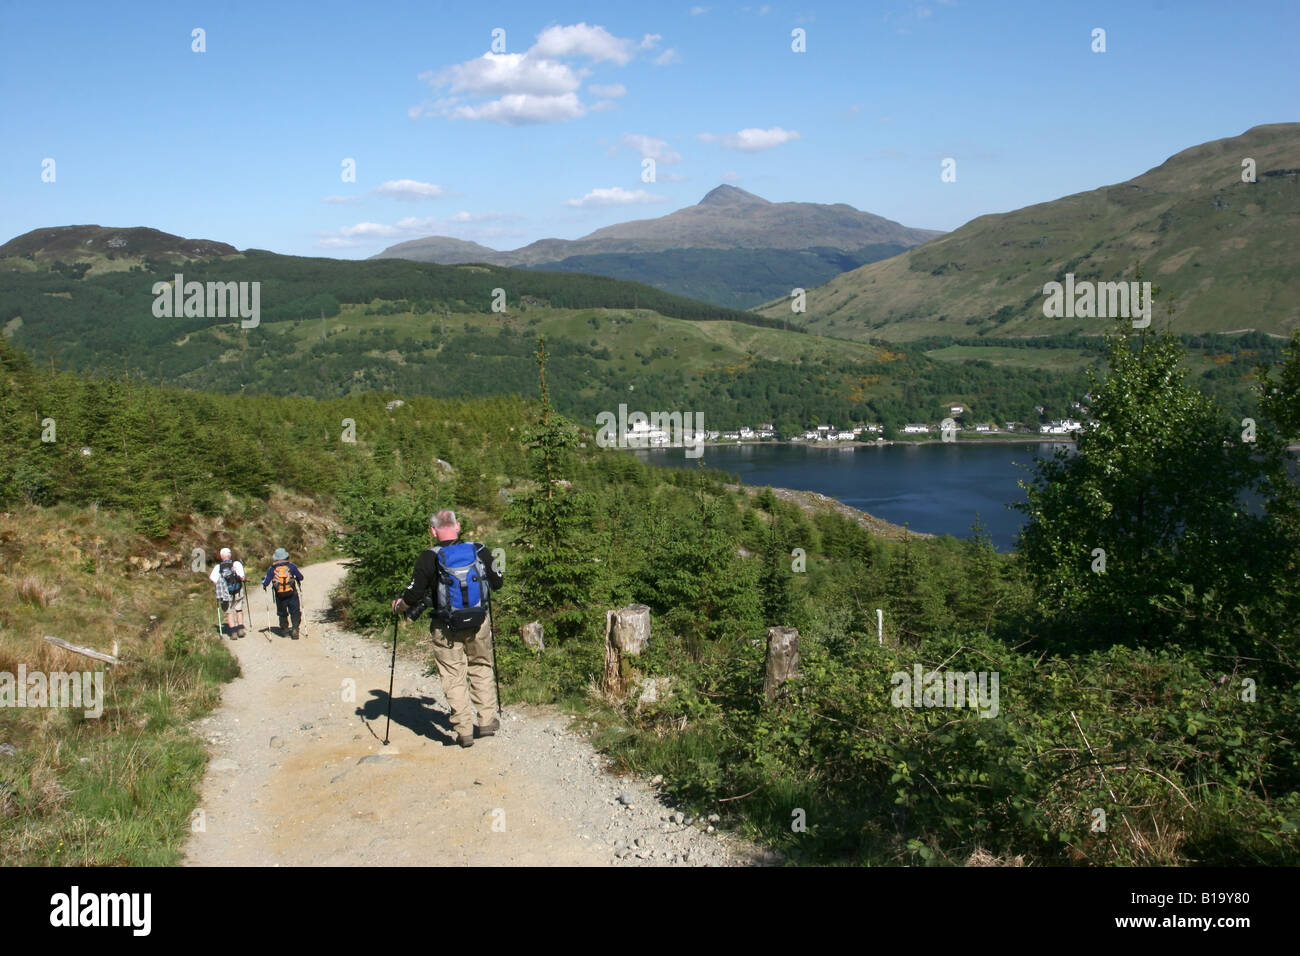 Hikers descending on path from Ben Arthur The Cobbler with Arrocher and Ben Lomond in the background - Stock Image